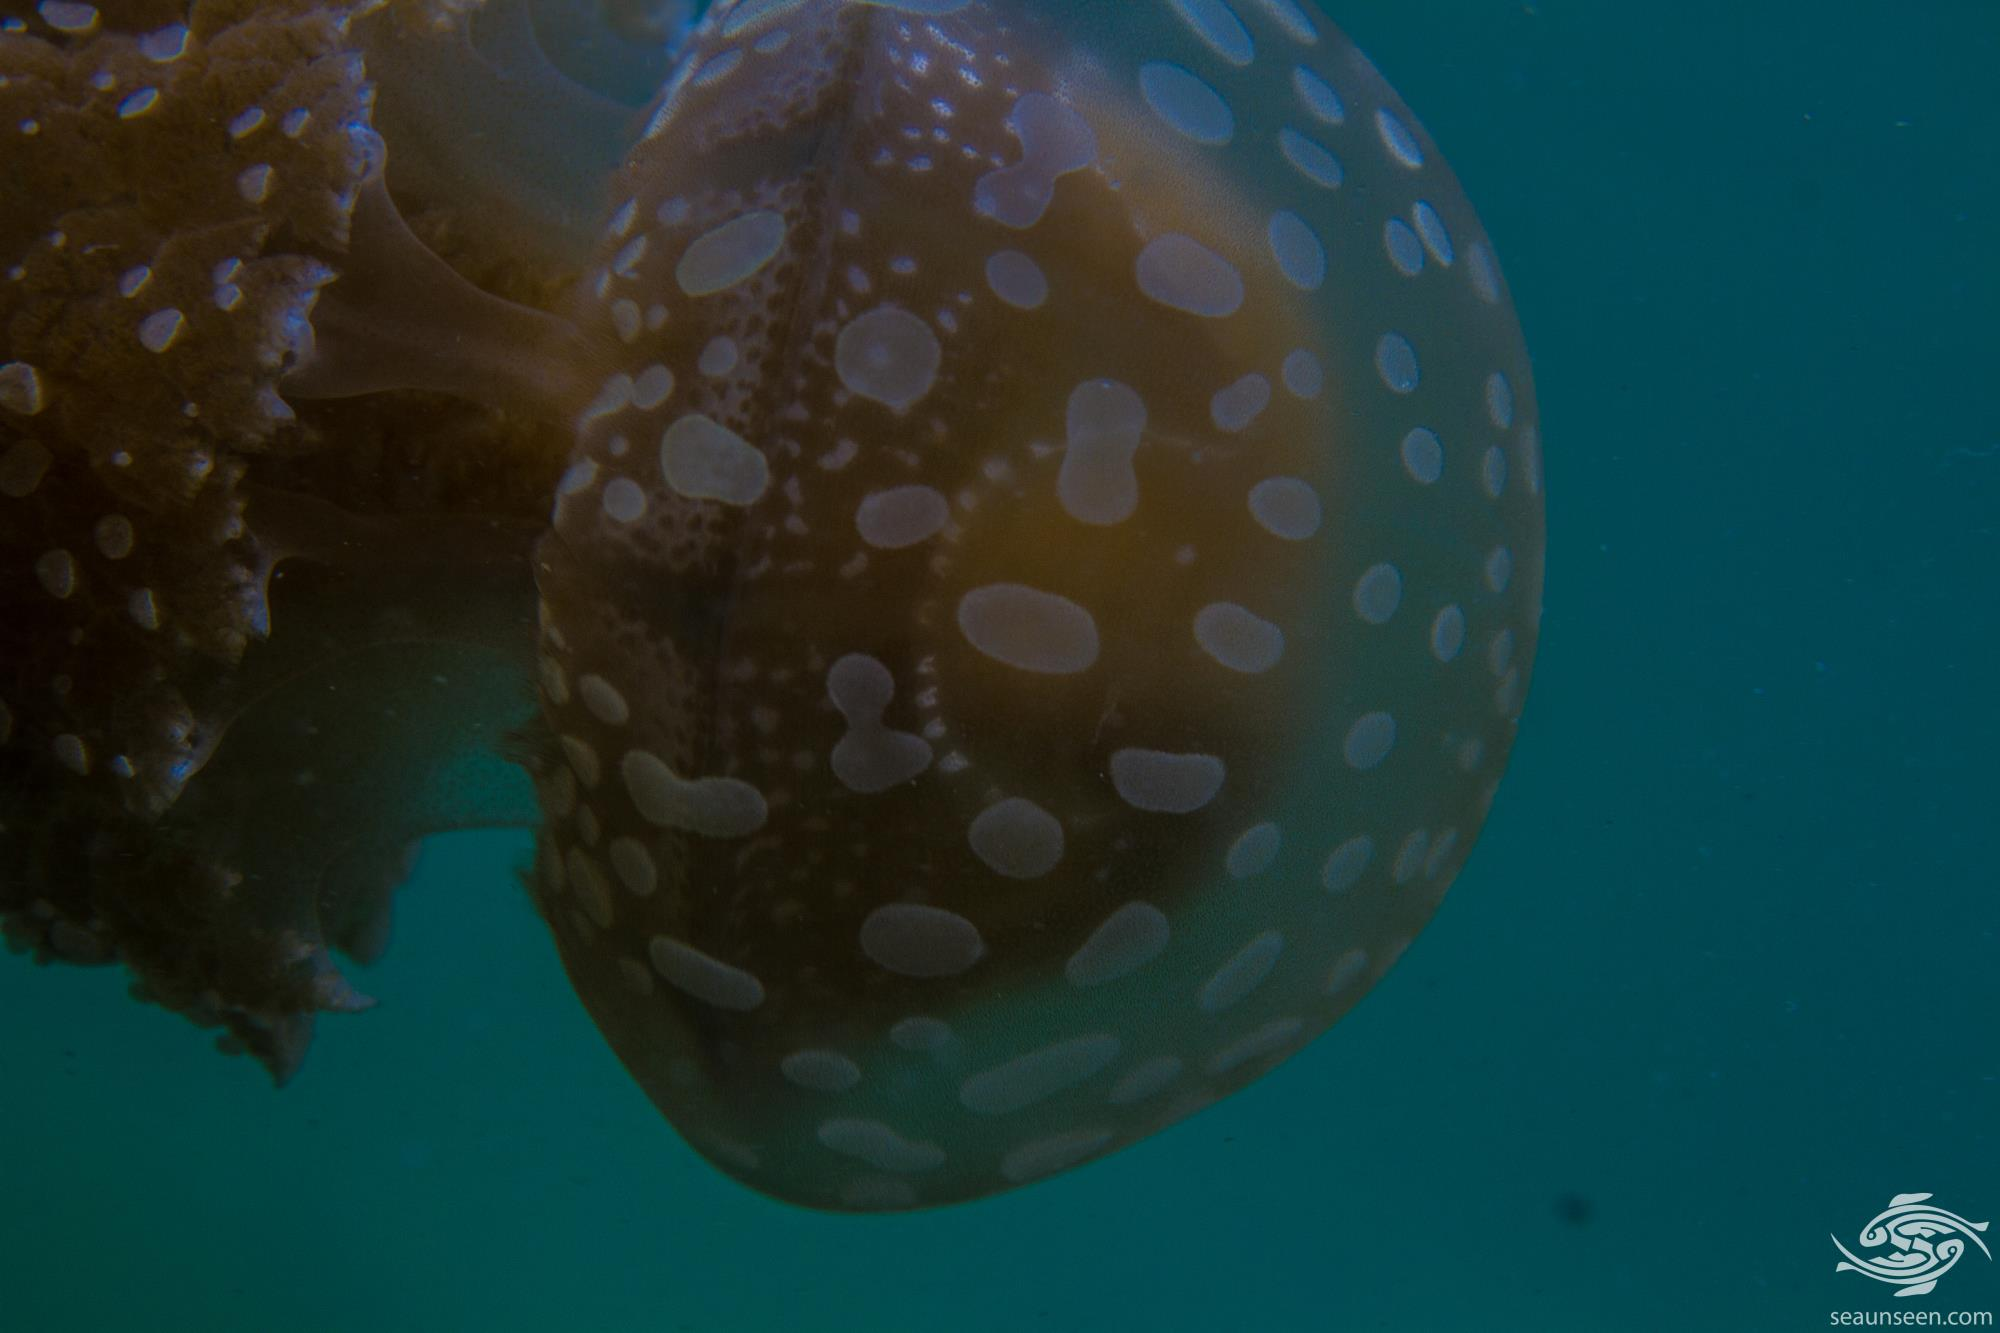 Spotted Jelly, Mastigias papua is also known as the lagoon jelly, golden medusa, or Papuan jellyfish